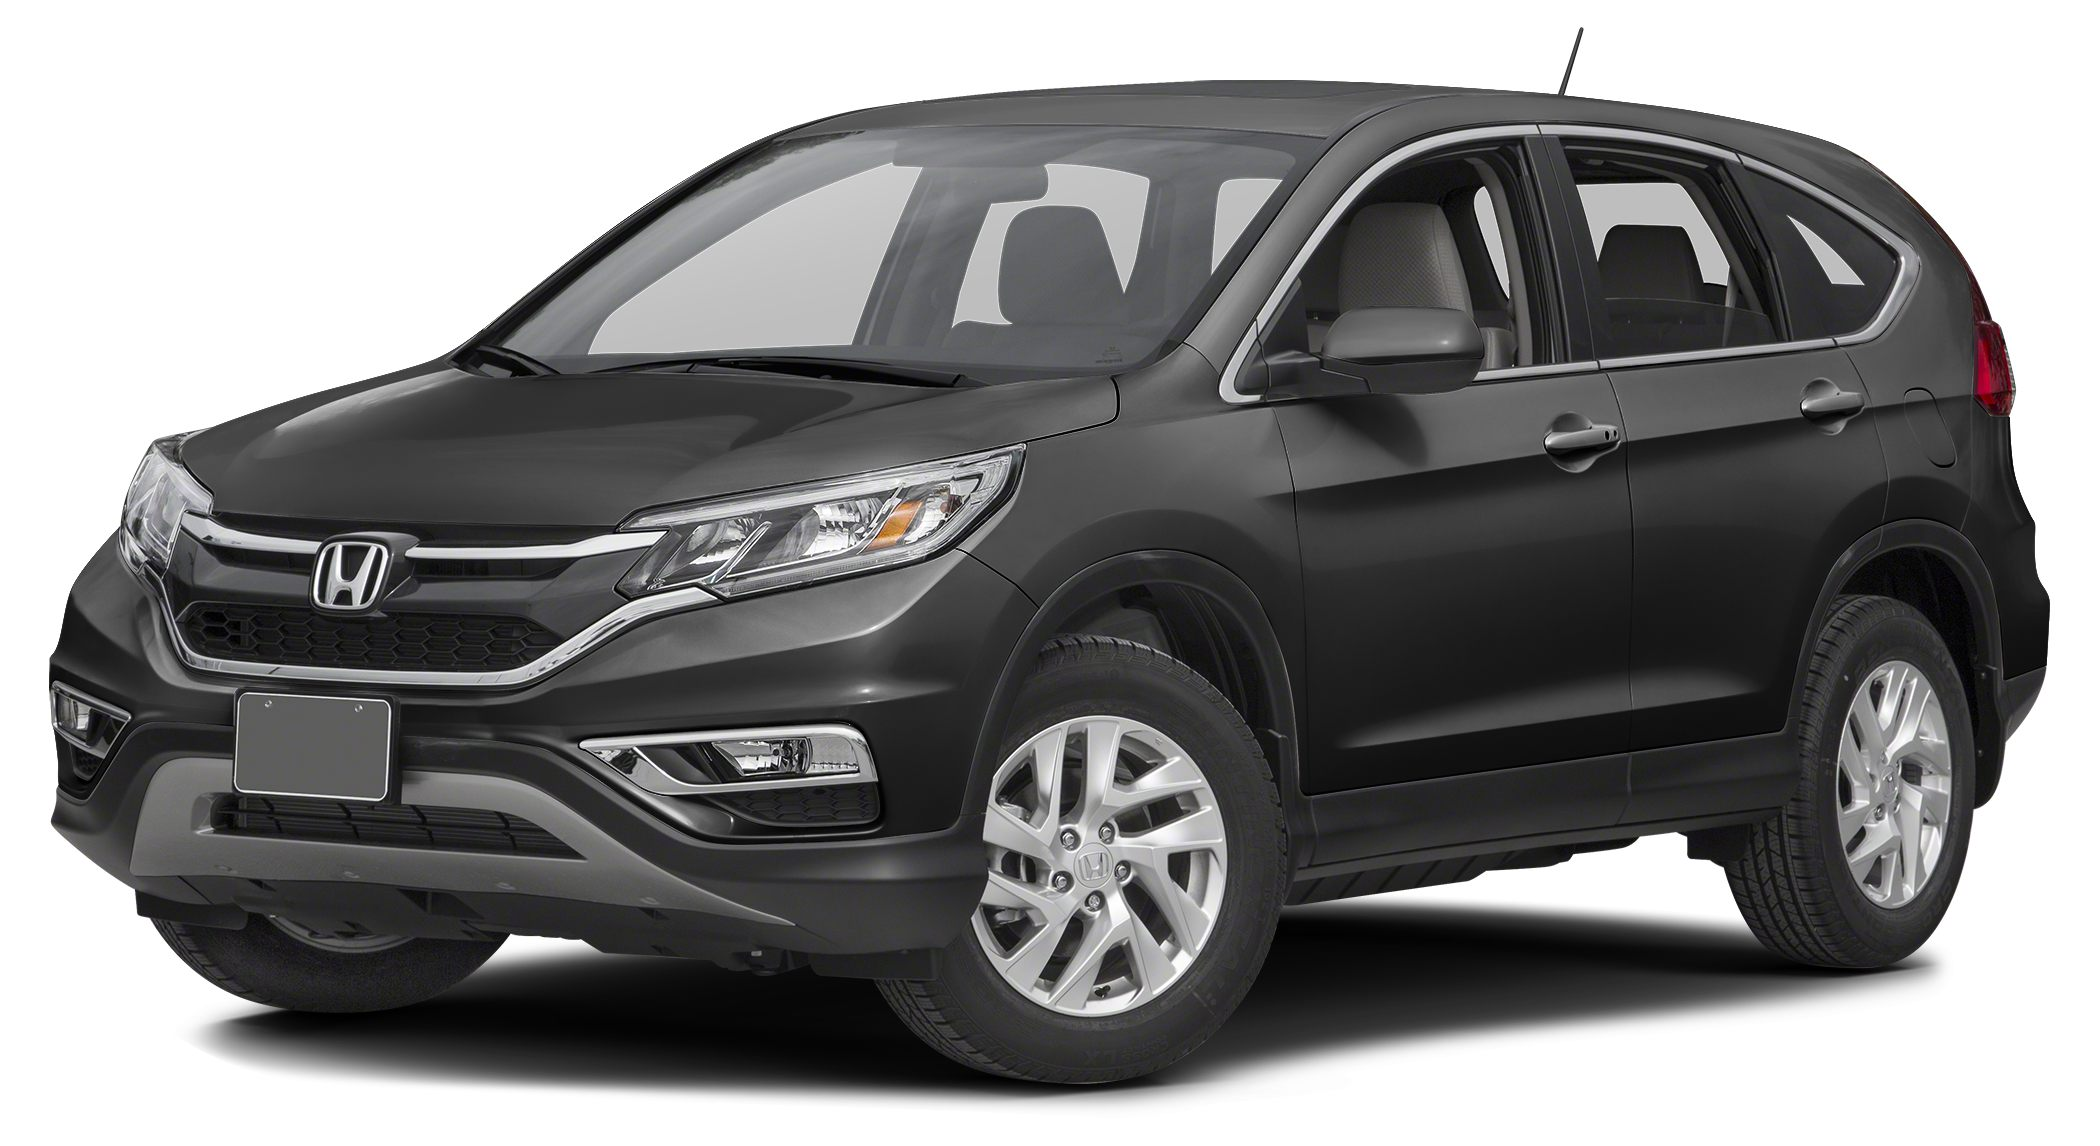 2016 Honda CR-V EX SUV buying made easy No games just business This handsome-looking 2016 Honda